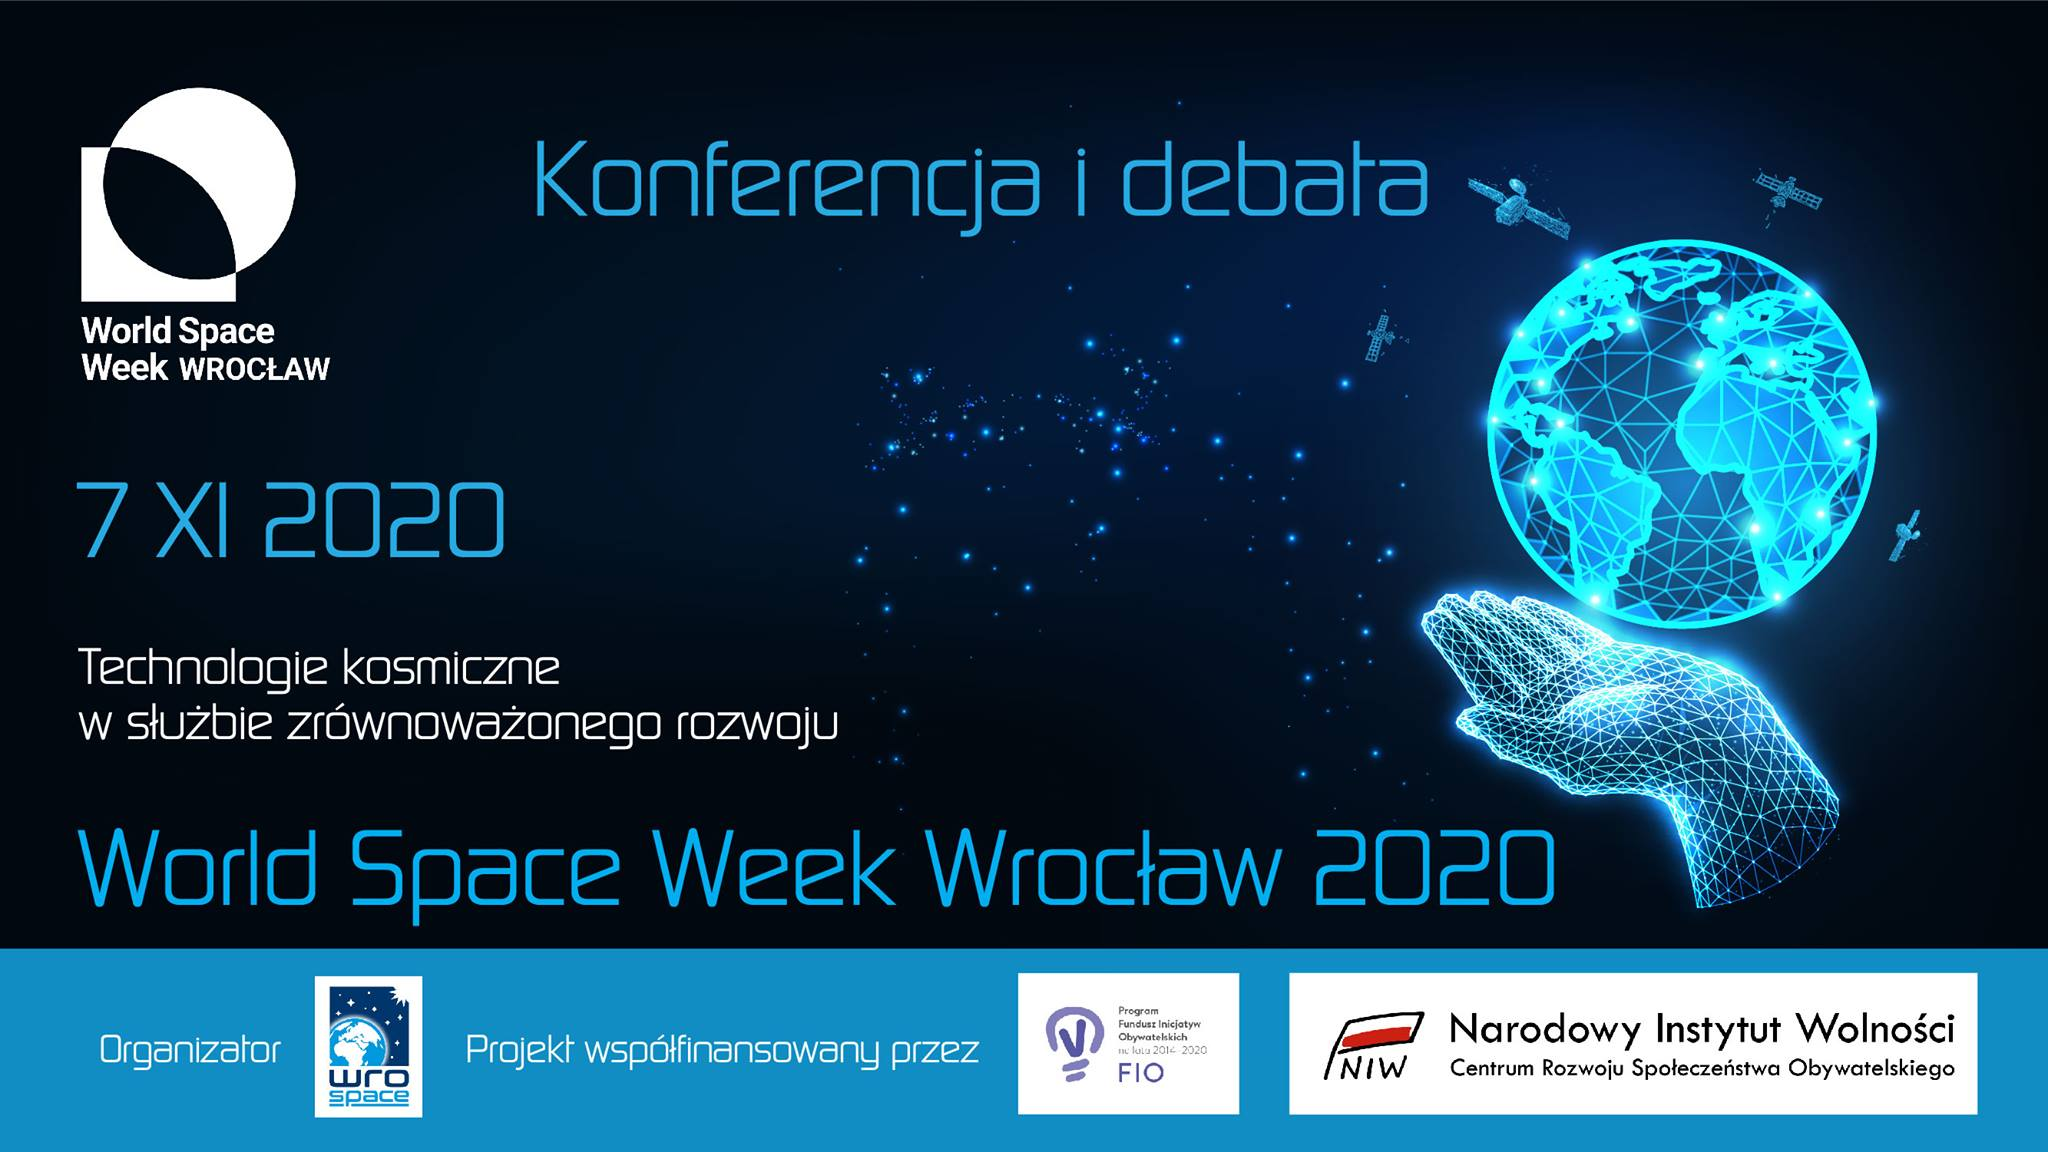 Konferencja i debata - World Space Week Wrocław 2020 @ Online